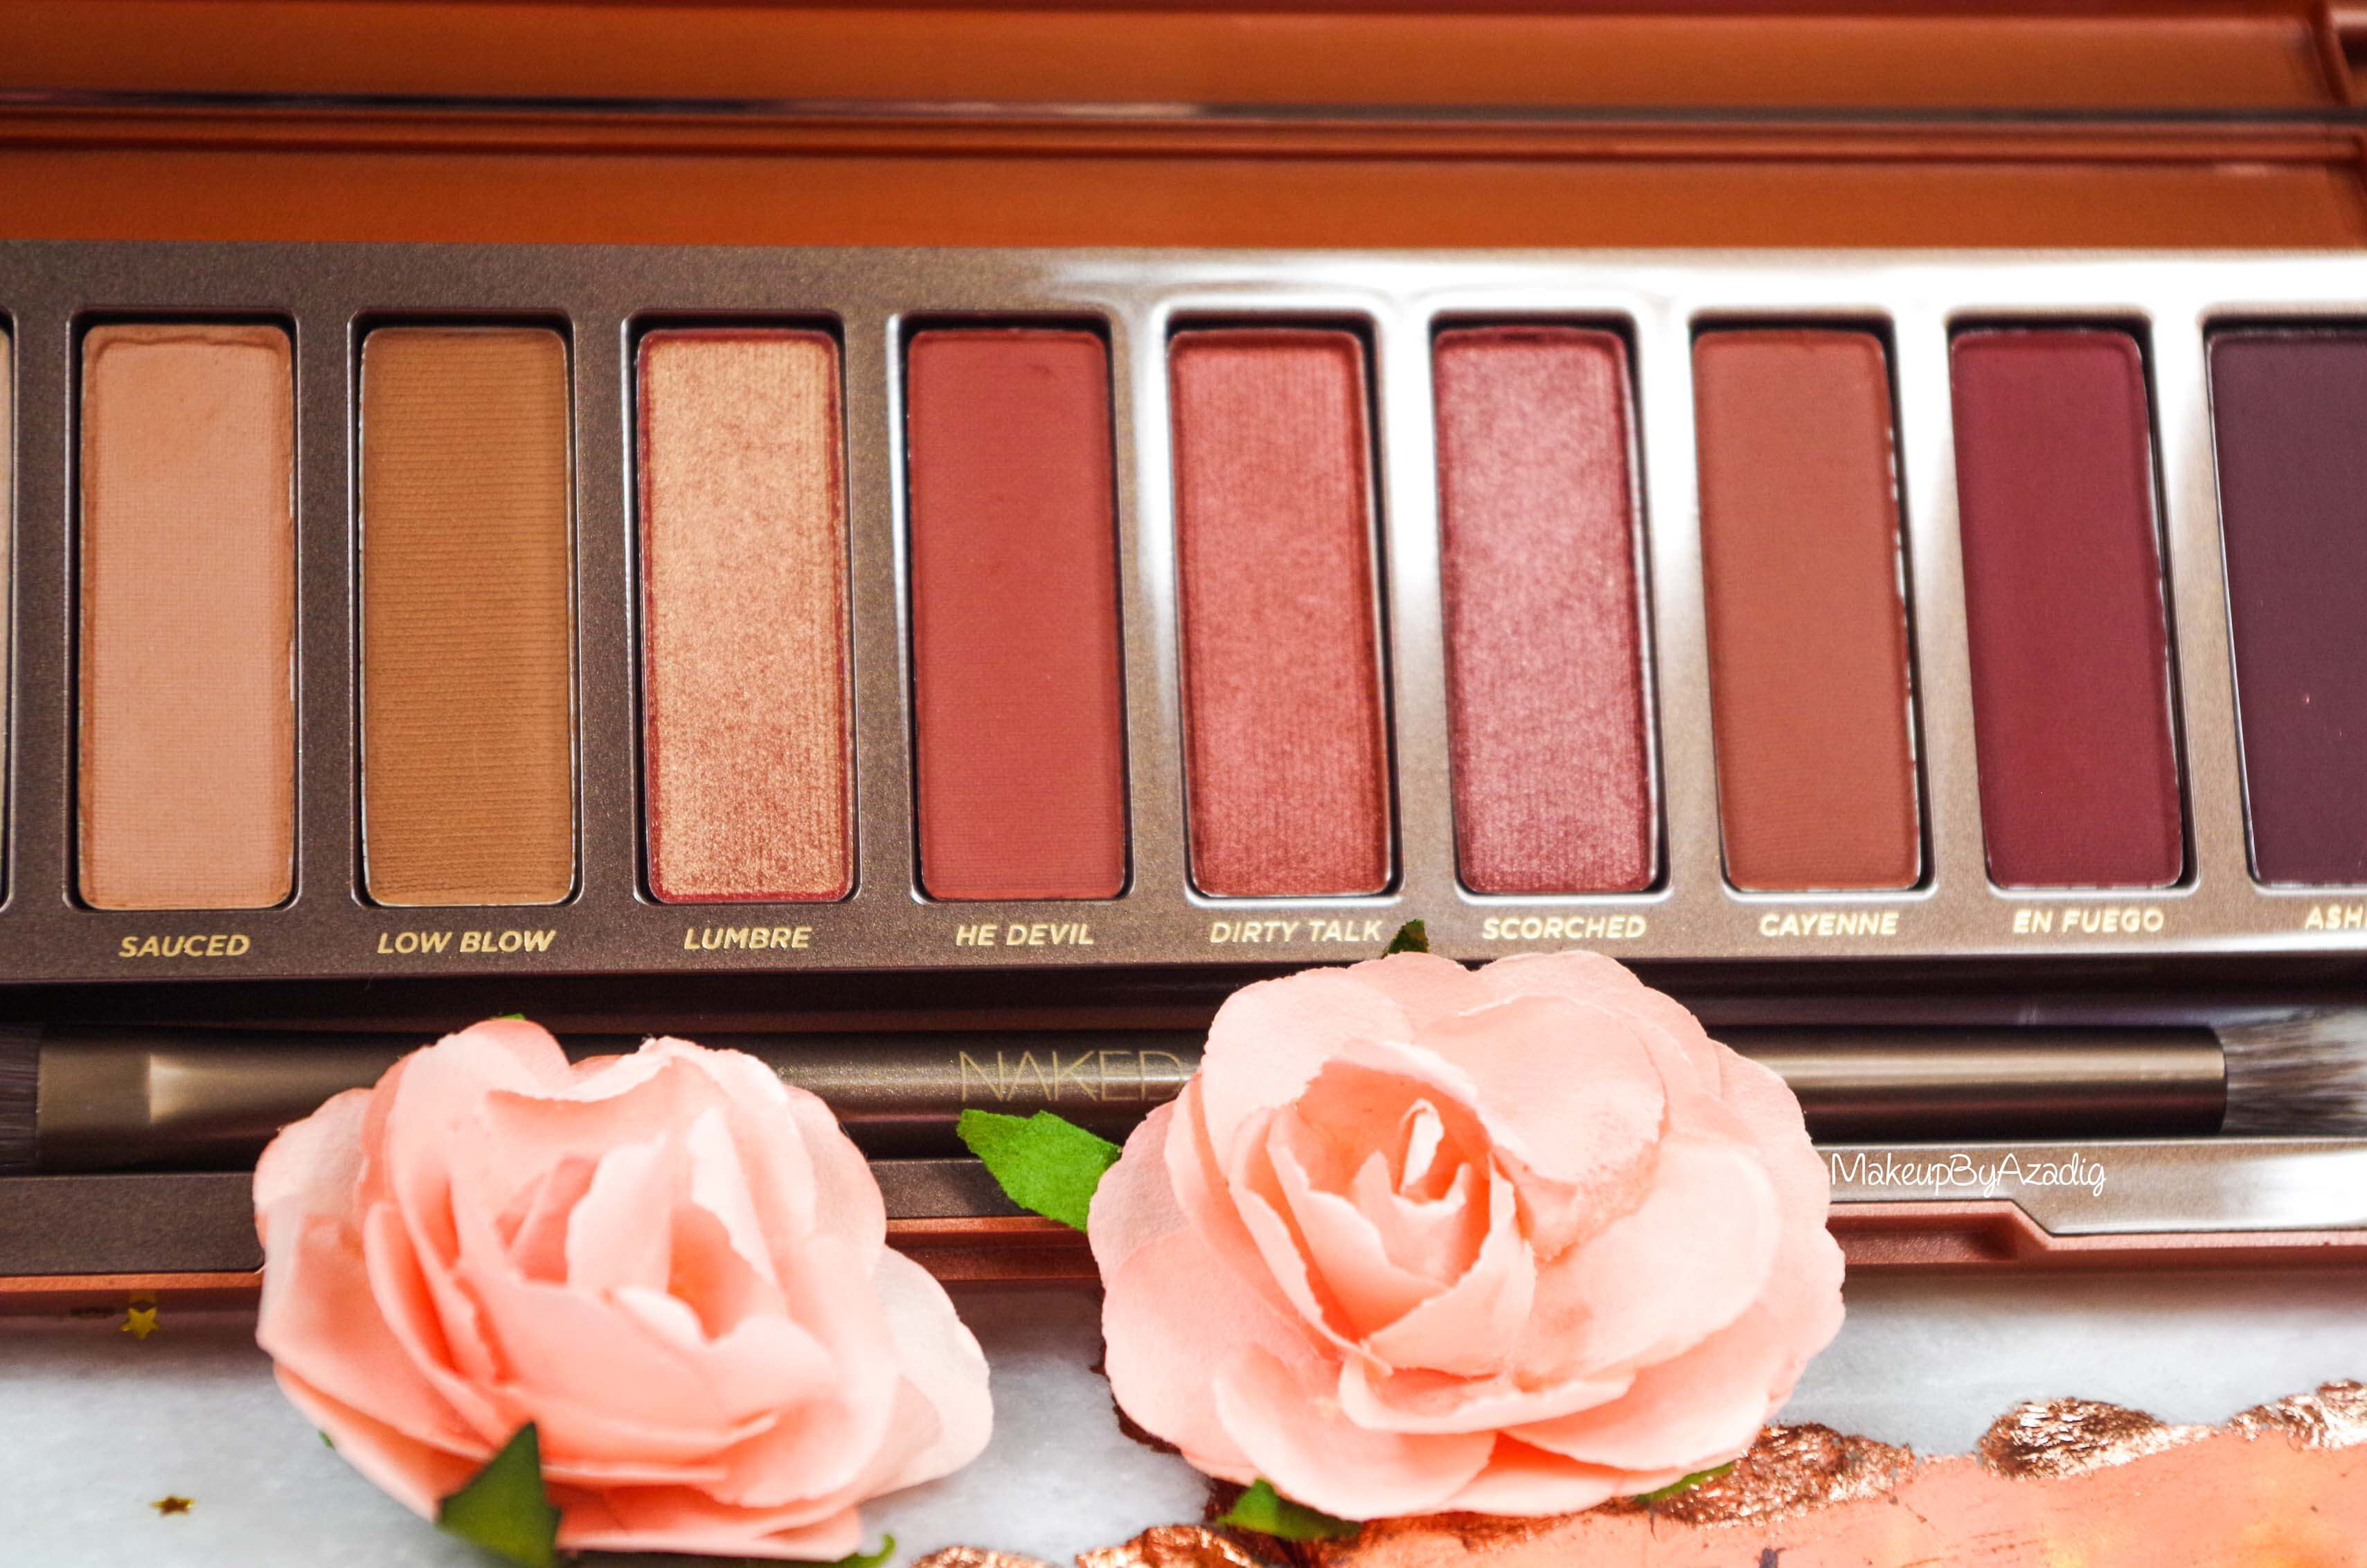 revue-review-nouvelle-palette-naked-heat-urban-decay-sephora-avis-prix-france-makeupbyazadig-swatch-colors